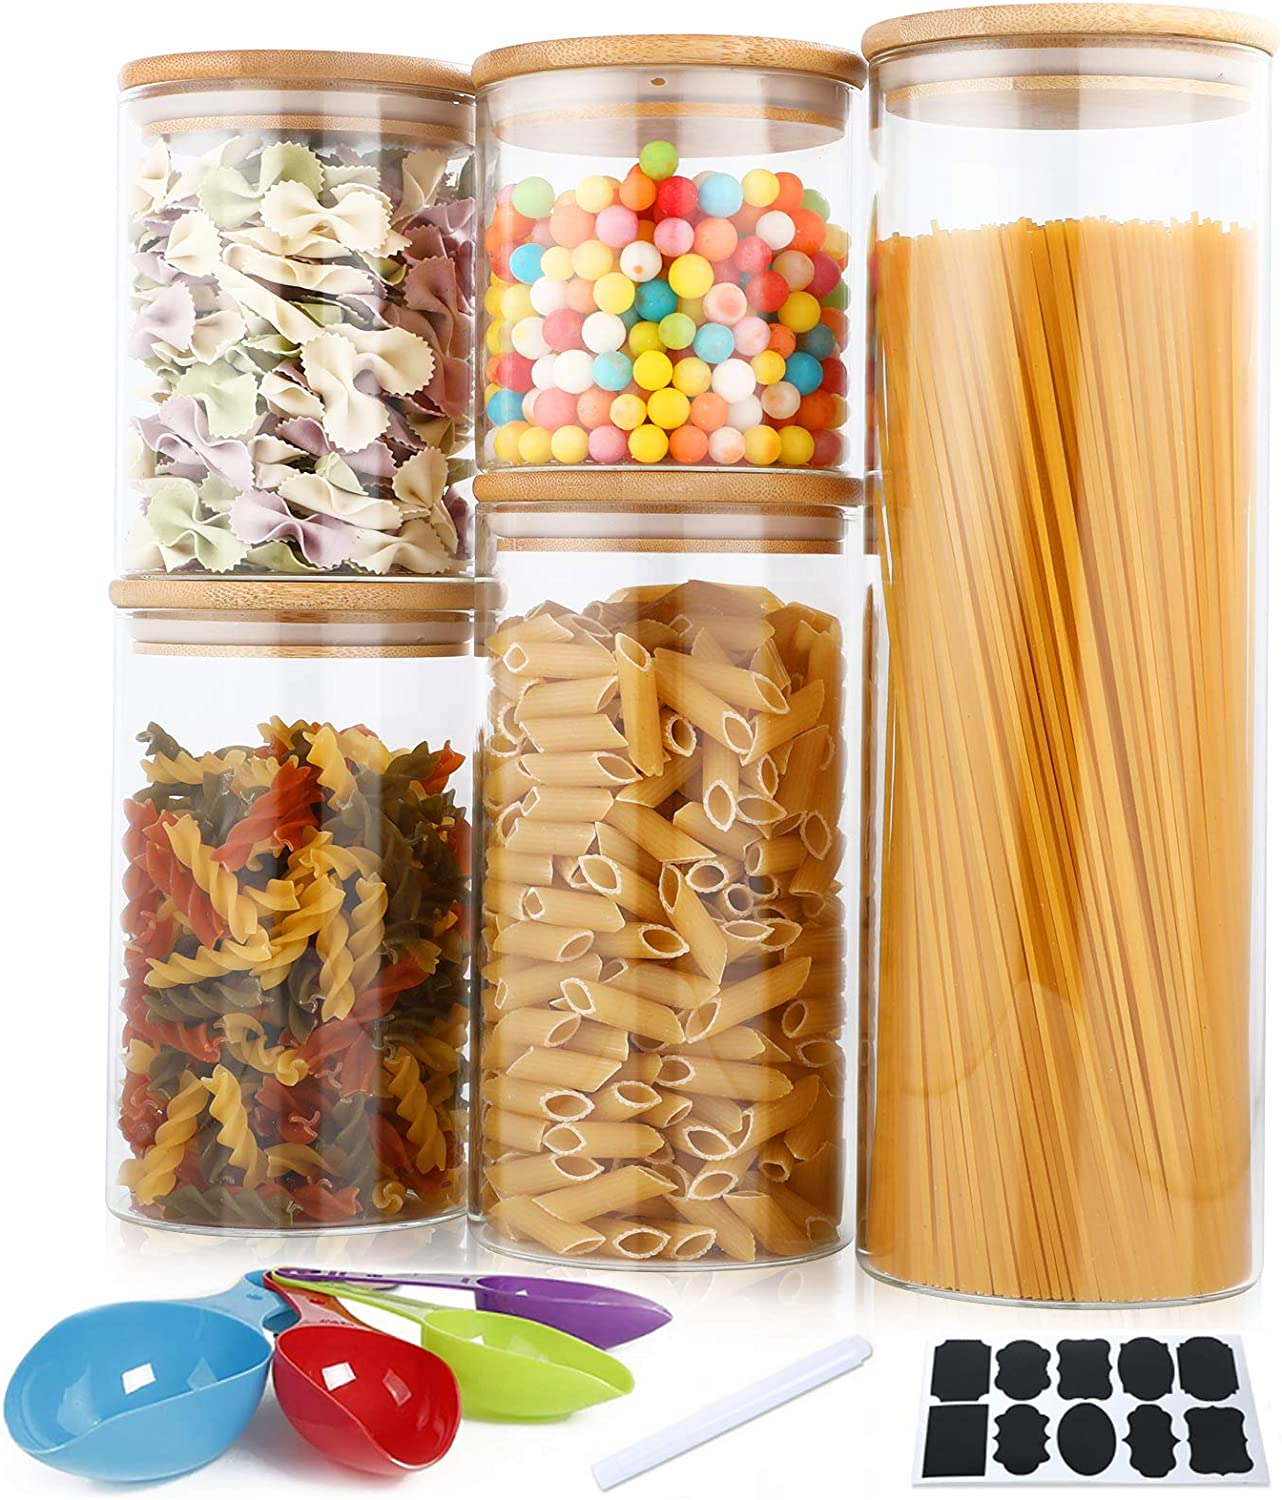 Glass Food Super special price Storage Jars Containers o Canister Set Airtight Complete Free Shipping